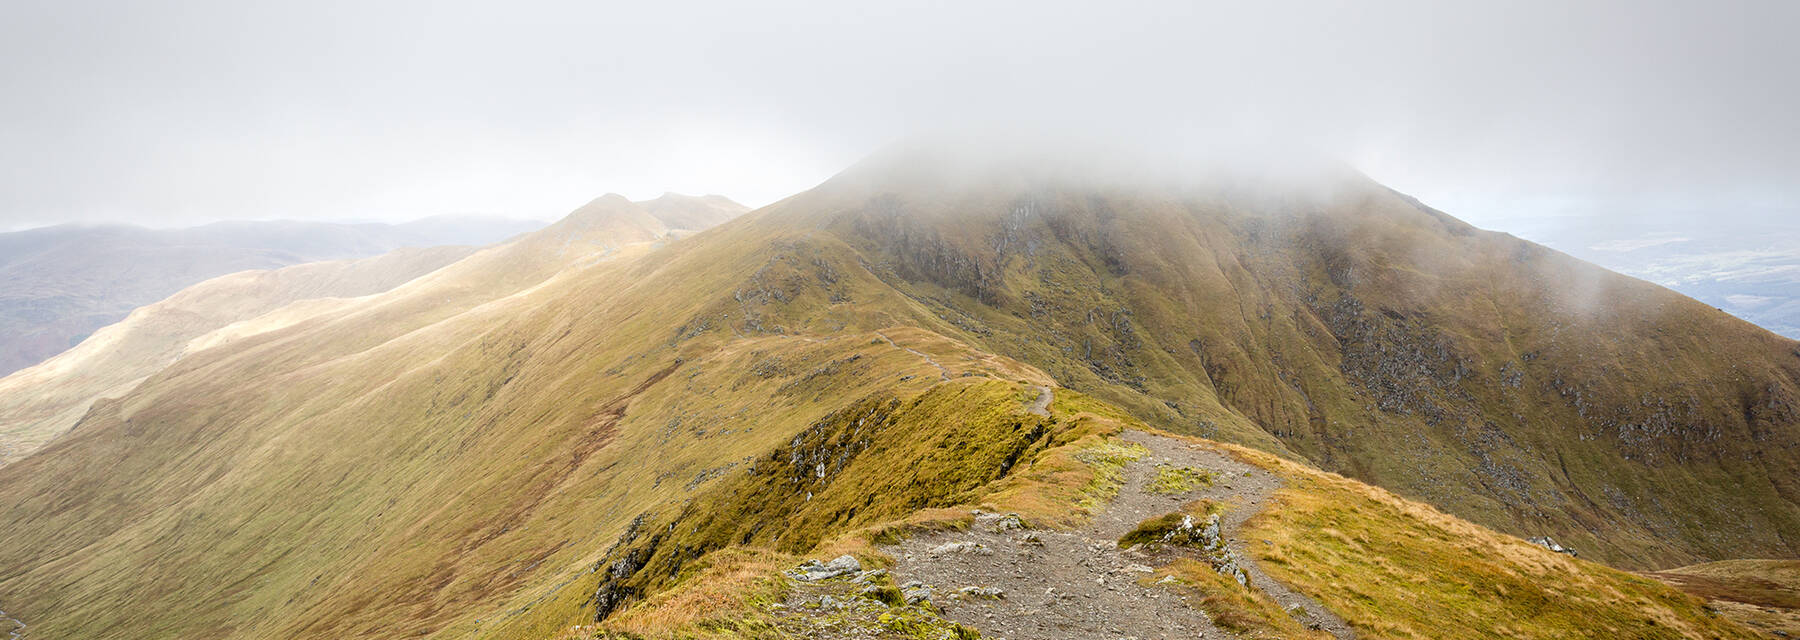 Mist blanketing the peak of Ben Lawers, with a ridge path running into the foreground.